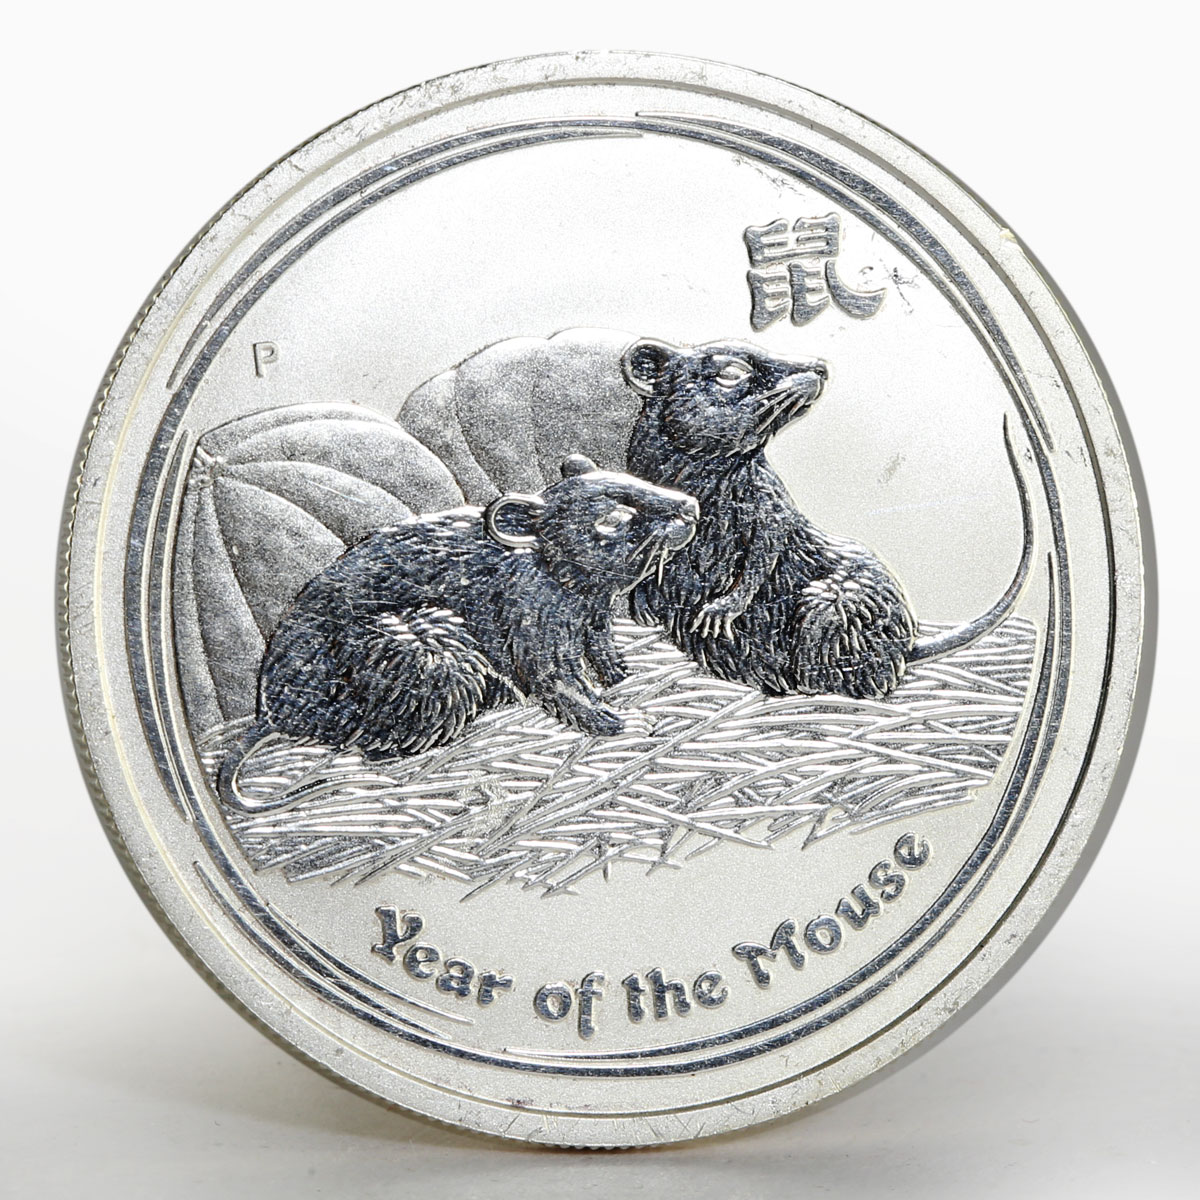 Australia 50 cents Year of the Mouse Lunar Series II 1/2 oz silver coin 2008